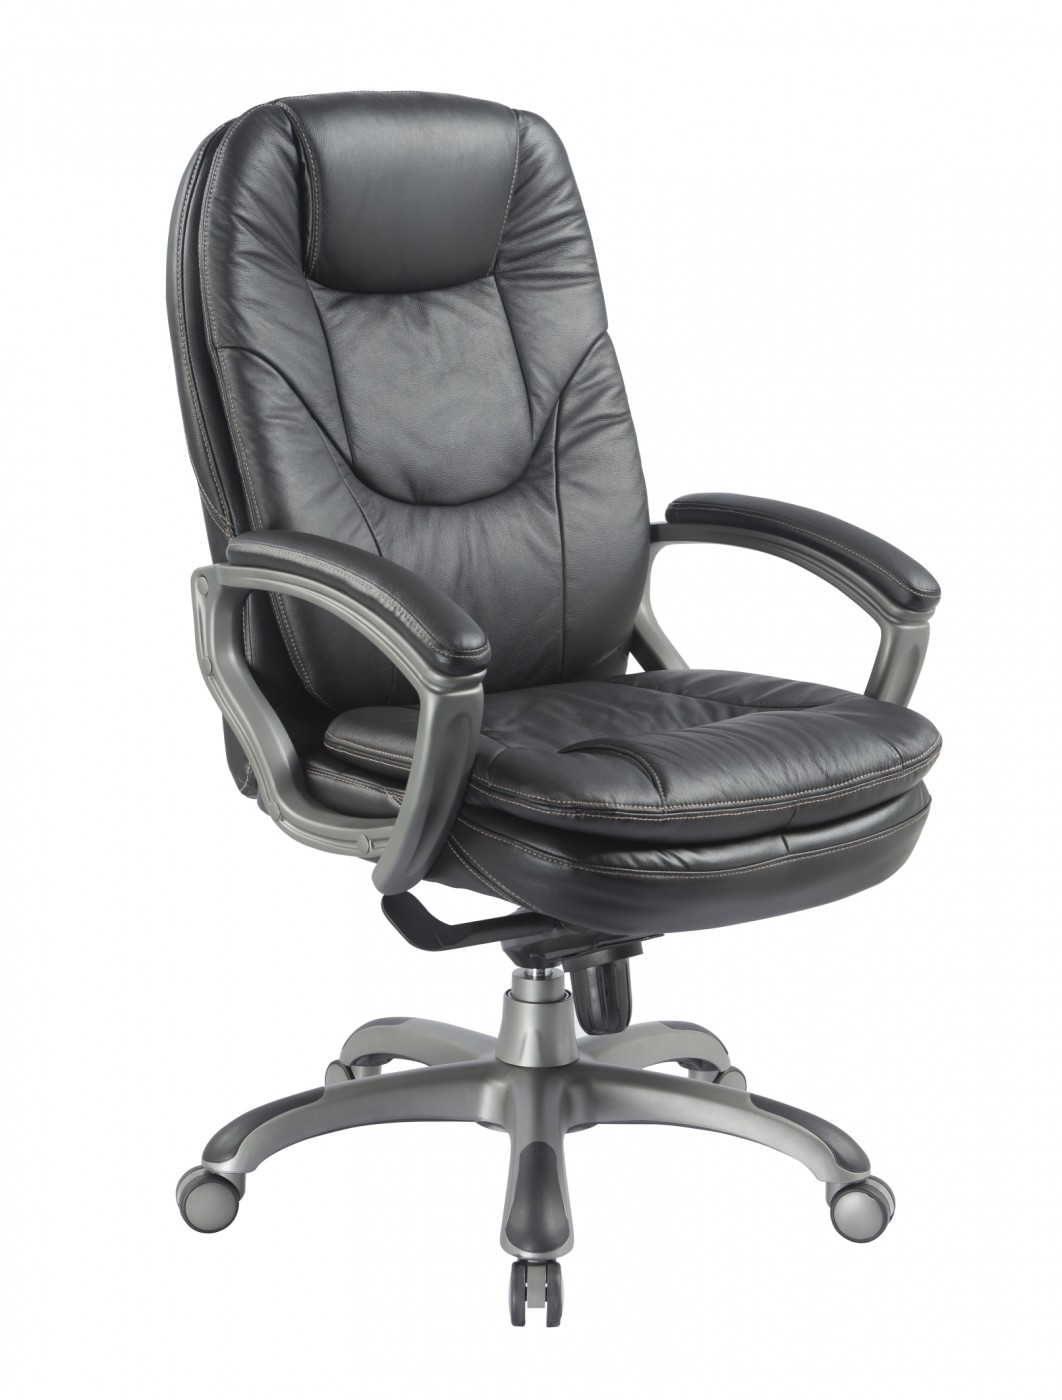 Office Chairs - Kiev Leather Office Chair BCL/U646/LBK